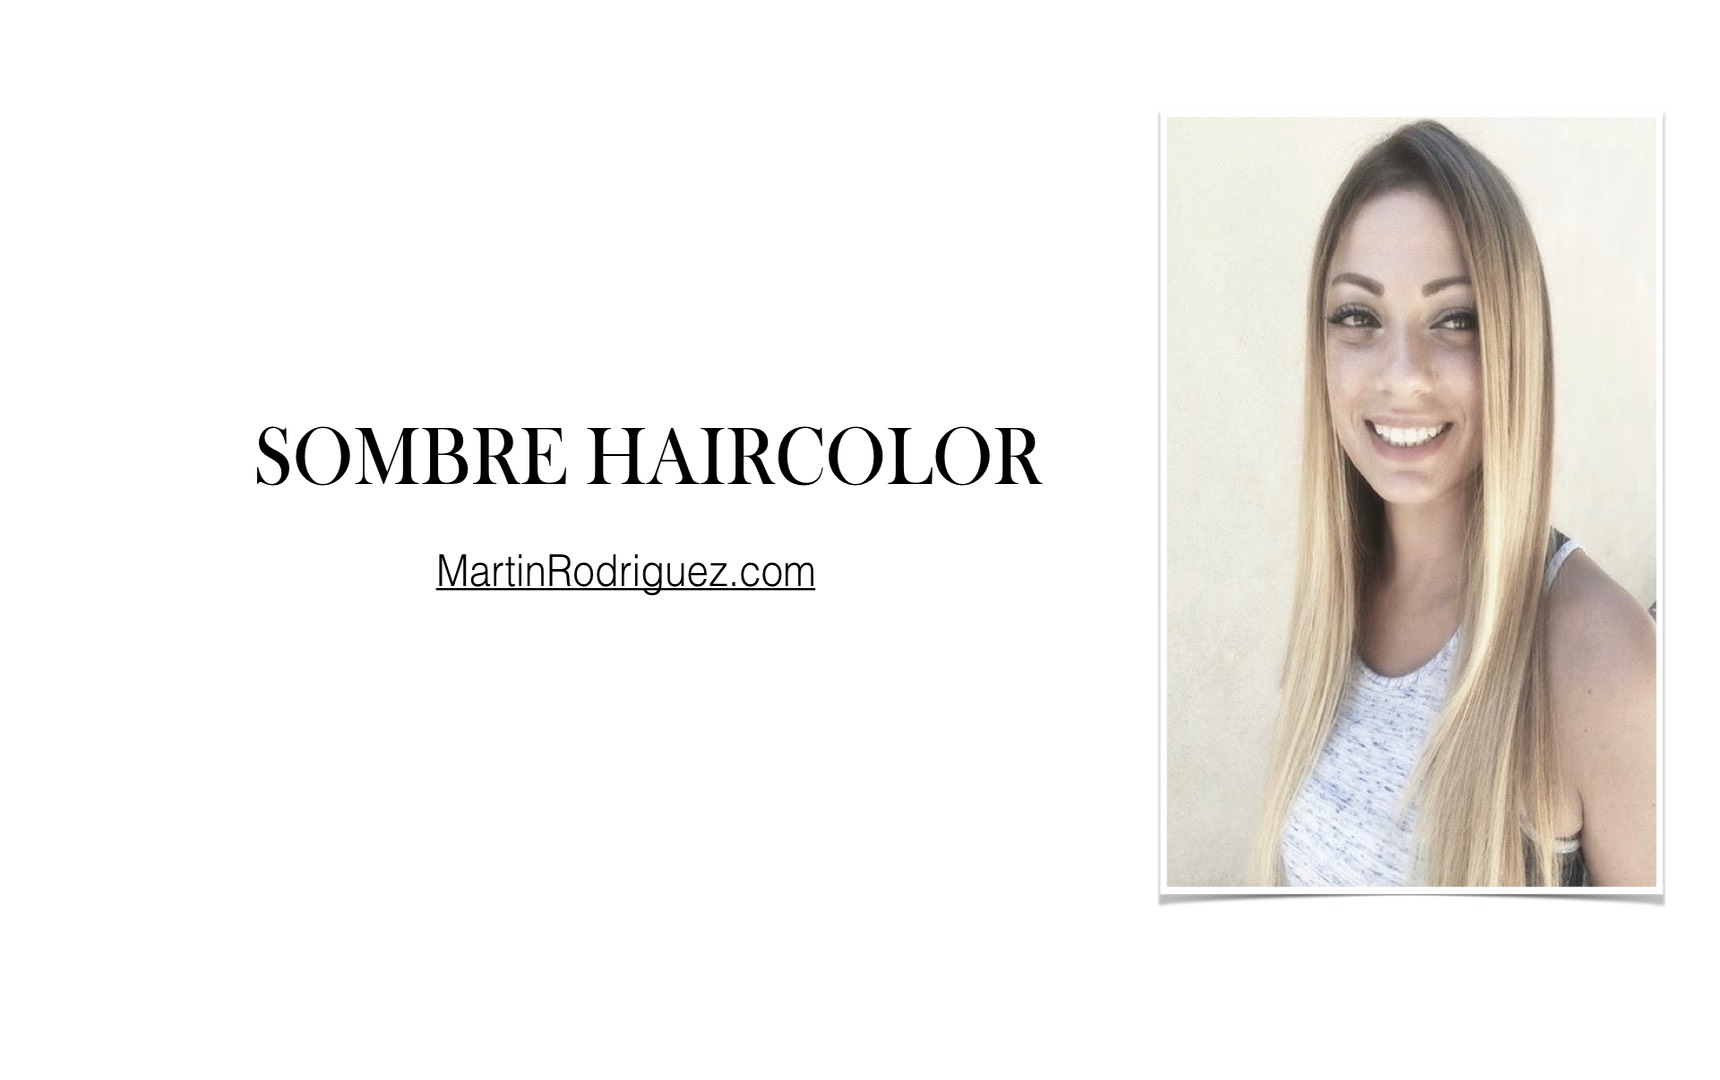 Sombre hair color for long hair